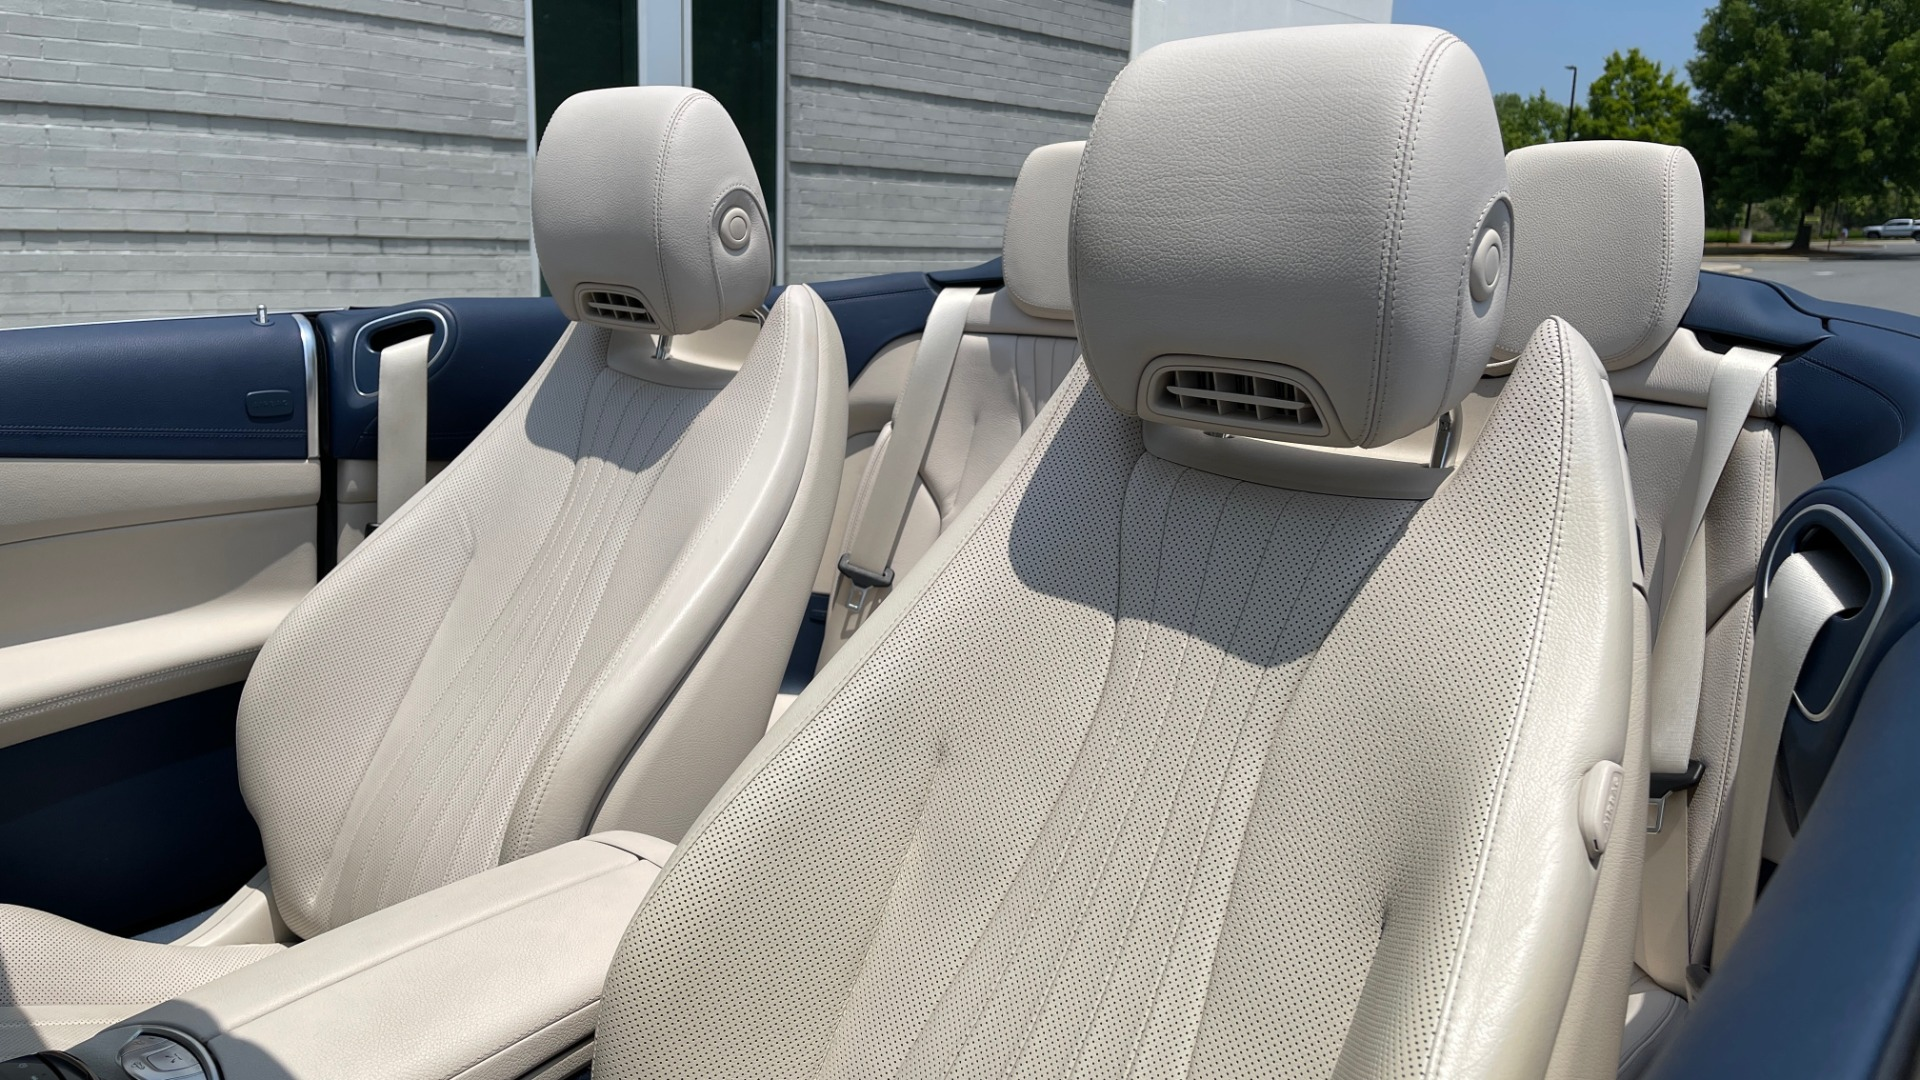 Used 2018 Mercedes-Benz E-CLASS E 400 CABRIOLET / PREM PKG / AMG LINE / NAV / REARVIEW for sale Sold at Formula Imports in Charlotte NC 28227 58